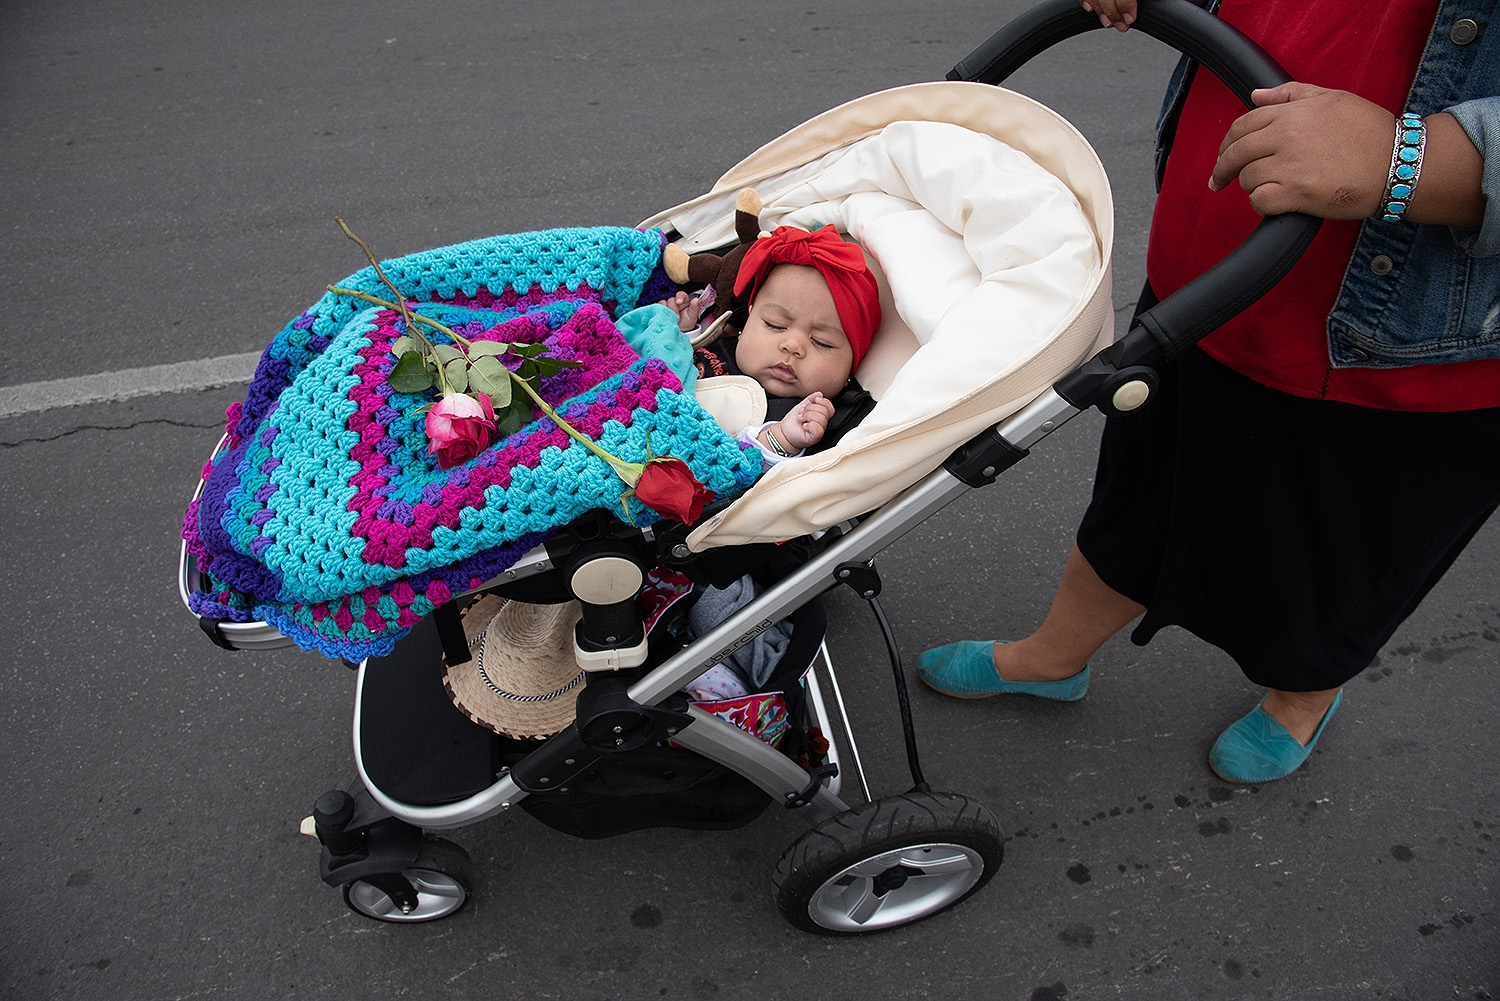 Maricela Olguin pushes daughter Aurora, 3 months, during the 29th annual San Antonio International Women's Day March in downtown San Antonio on Saturday, March 2. <b><em>Photo by V. Finster | Heron</em></b>